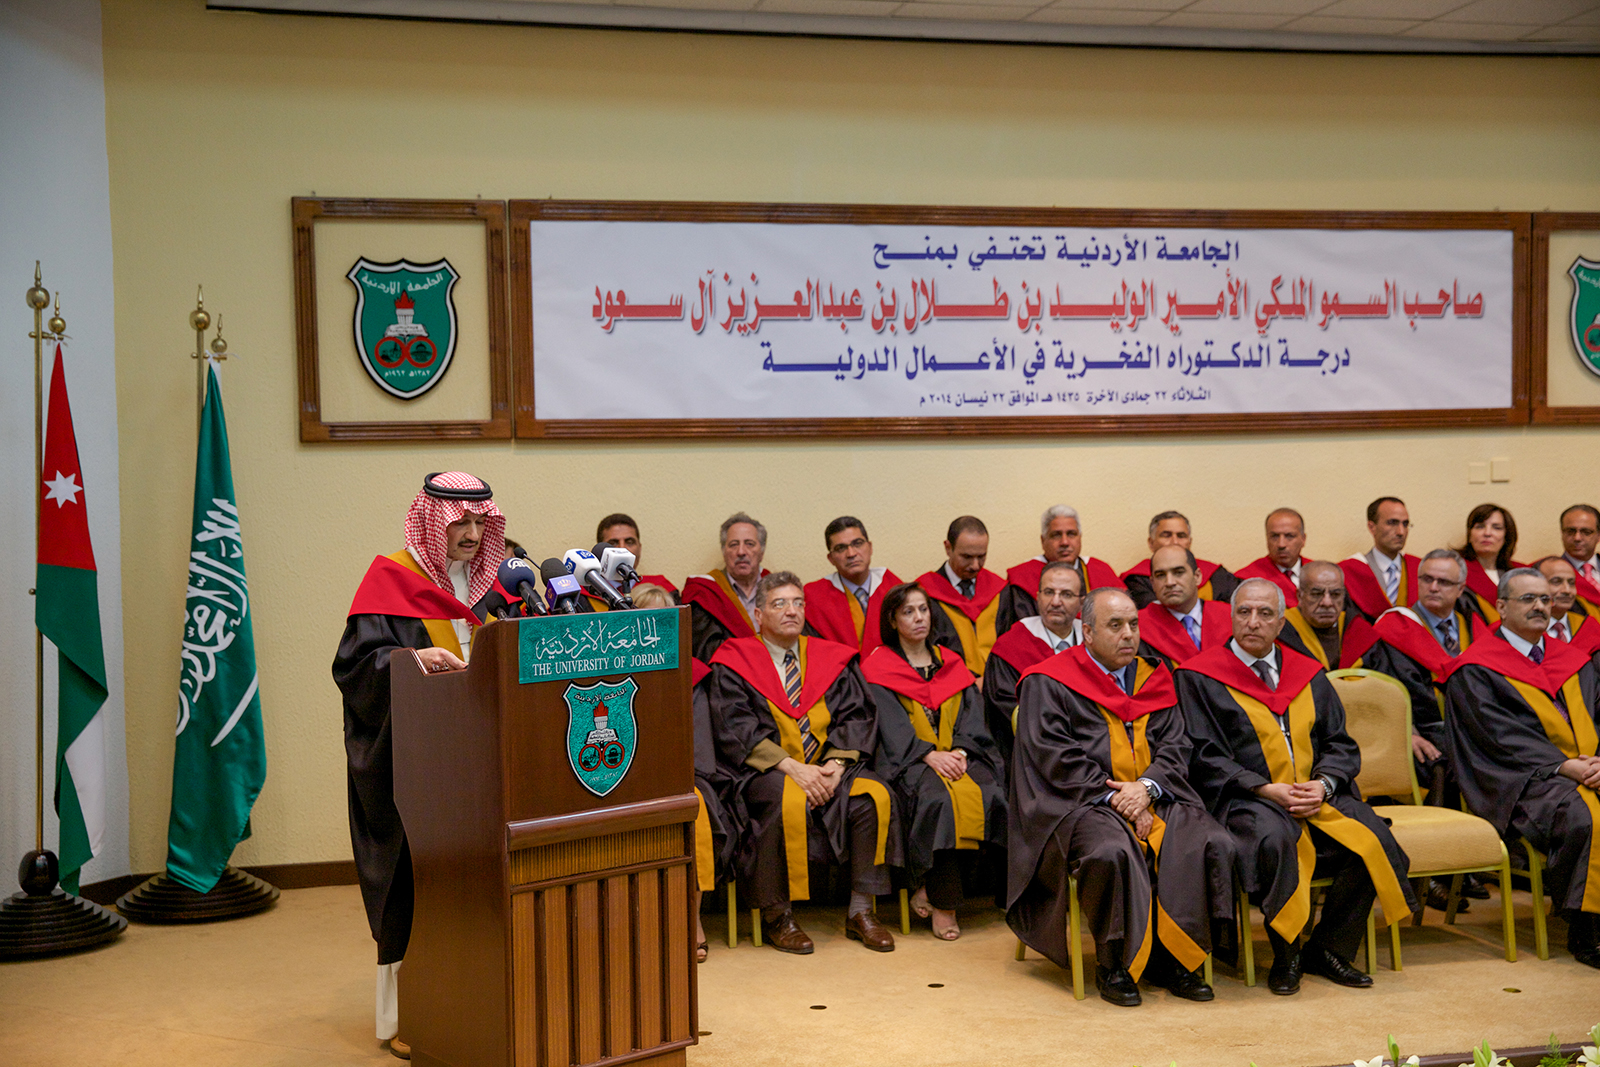 The University Of Jordan News